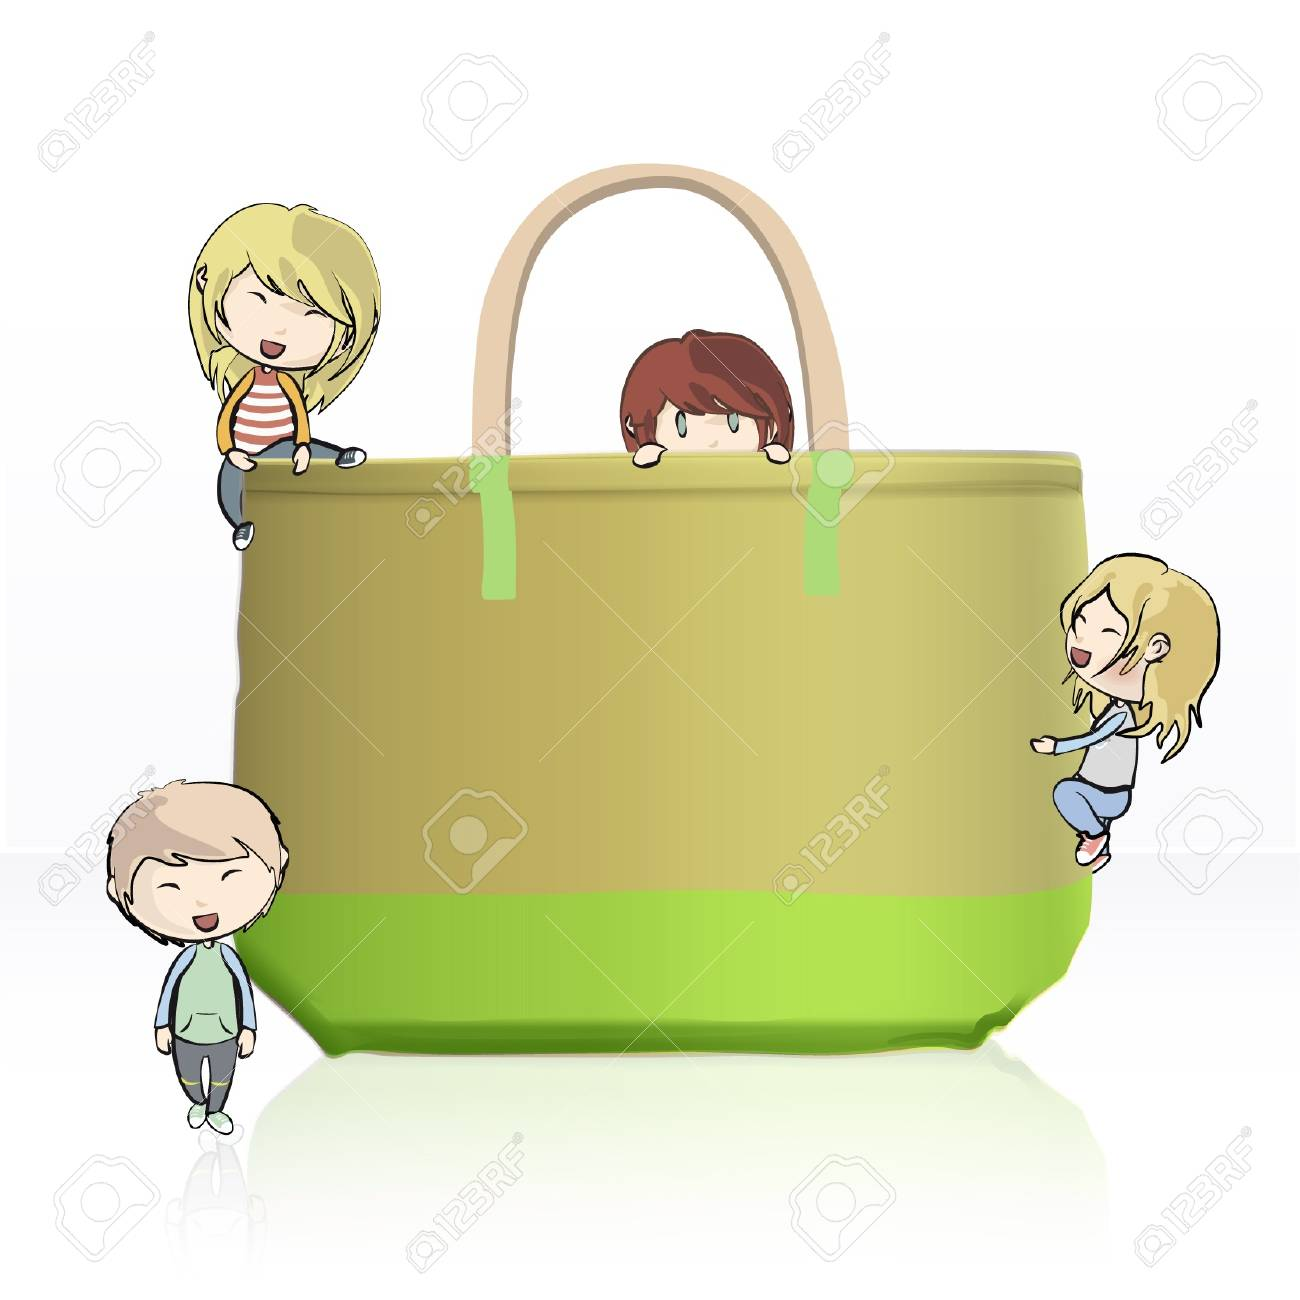 Many children playing with a big green bag  Vector illustration Stock Vector - 16932510